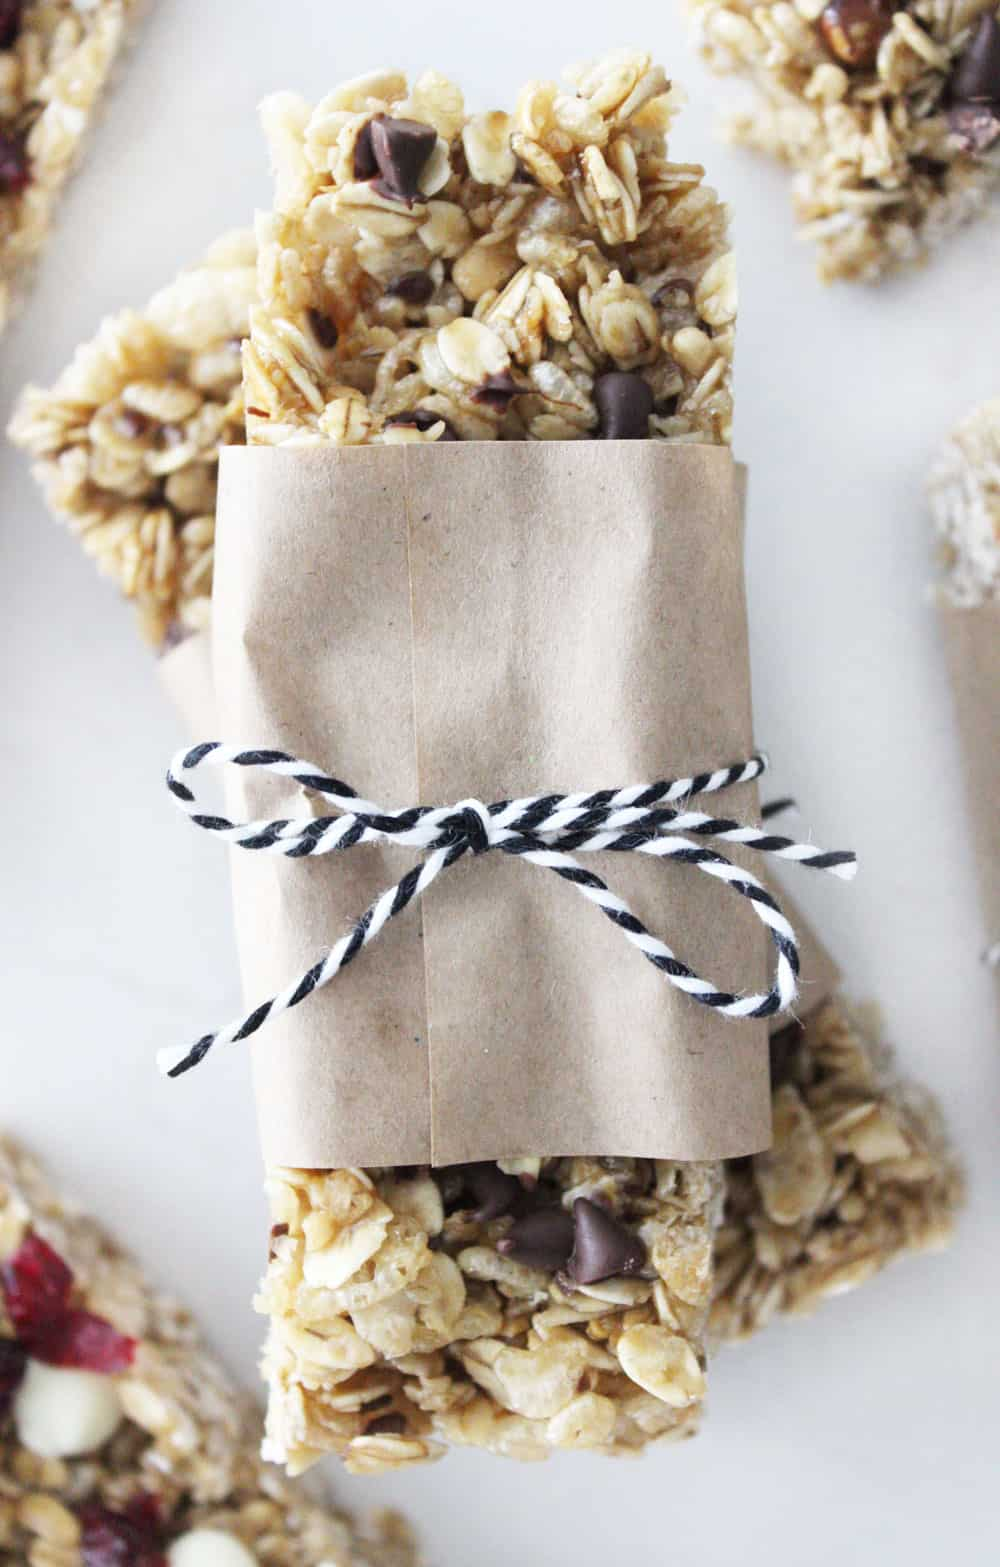 homemade chocolate chip granola bars stacked on top of each other wrapped in paper